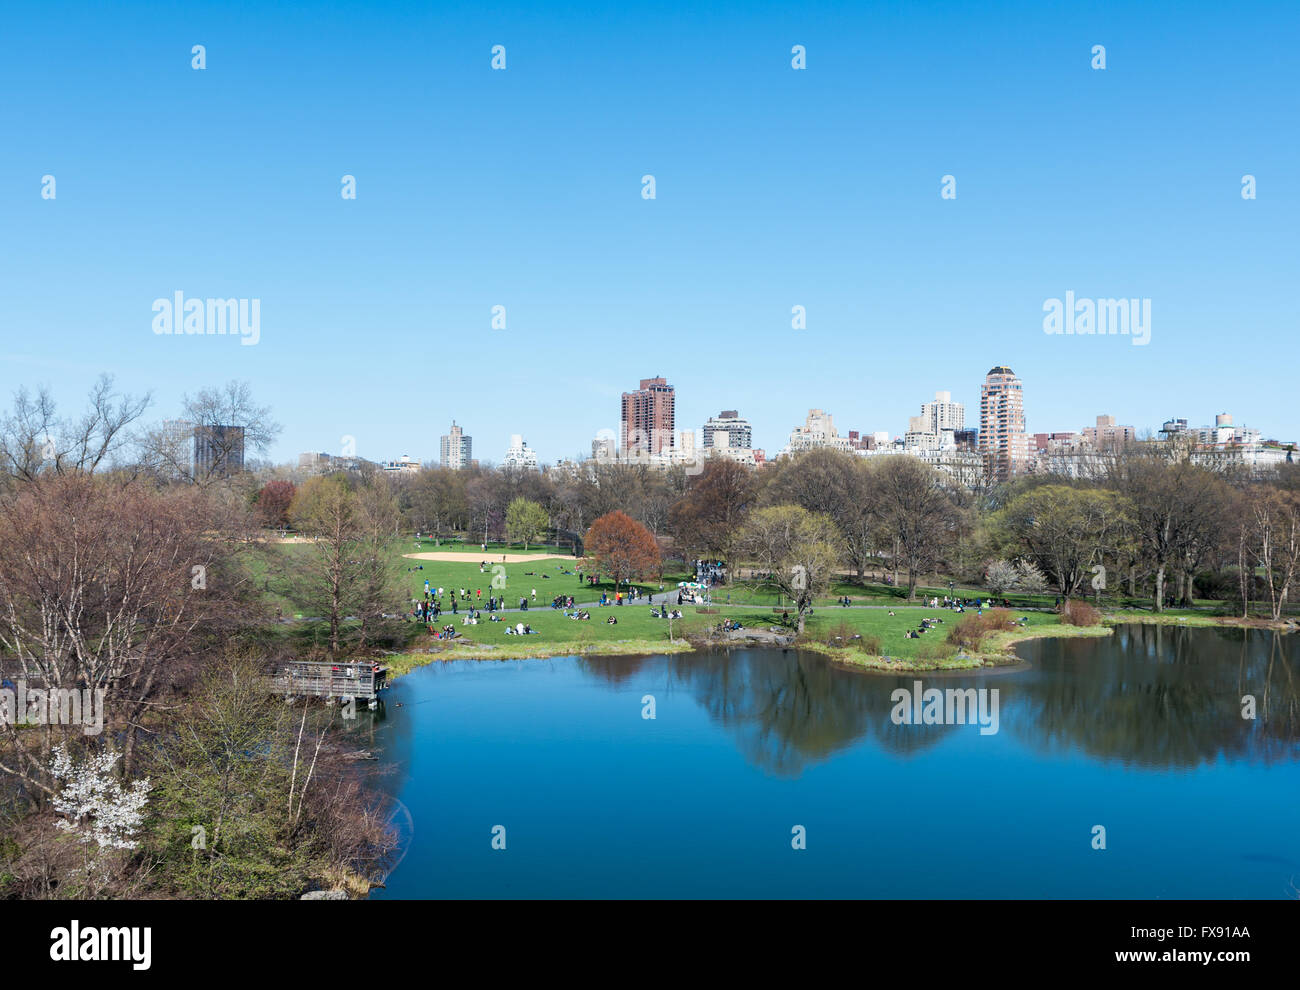 View from Belvedere Castle overlooking Turtle Pond and the Great Lawn, towards the Upper East Side of Manhattan, - Stock Image